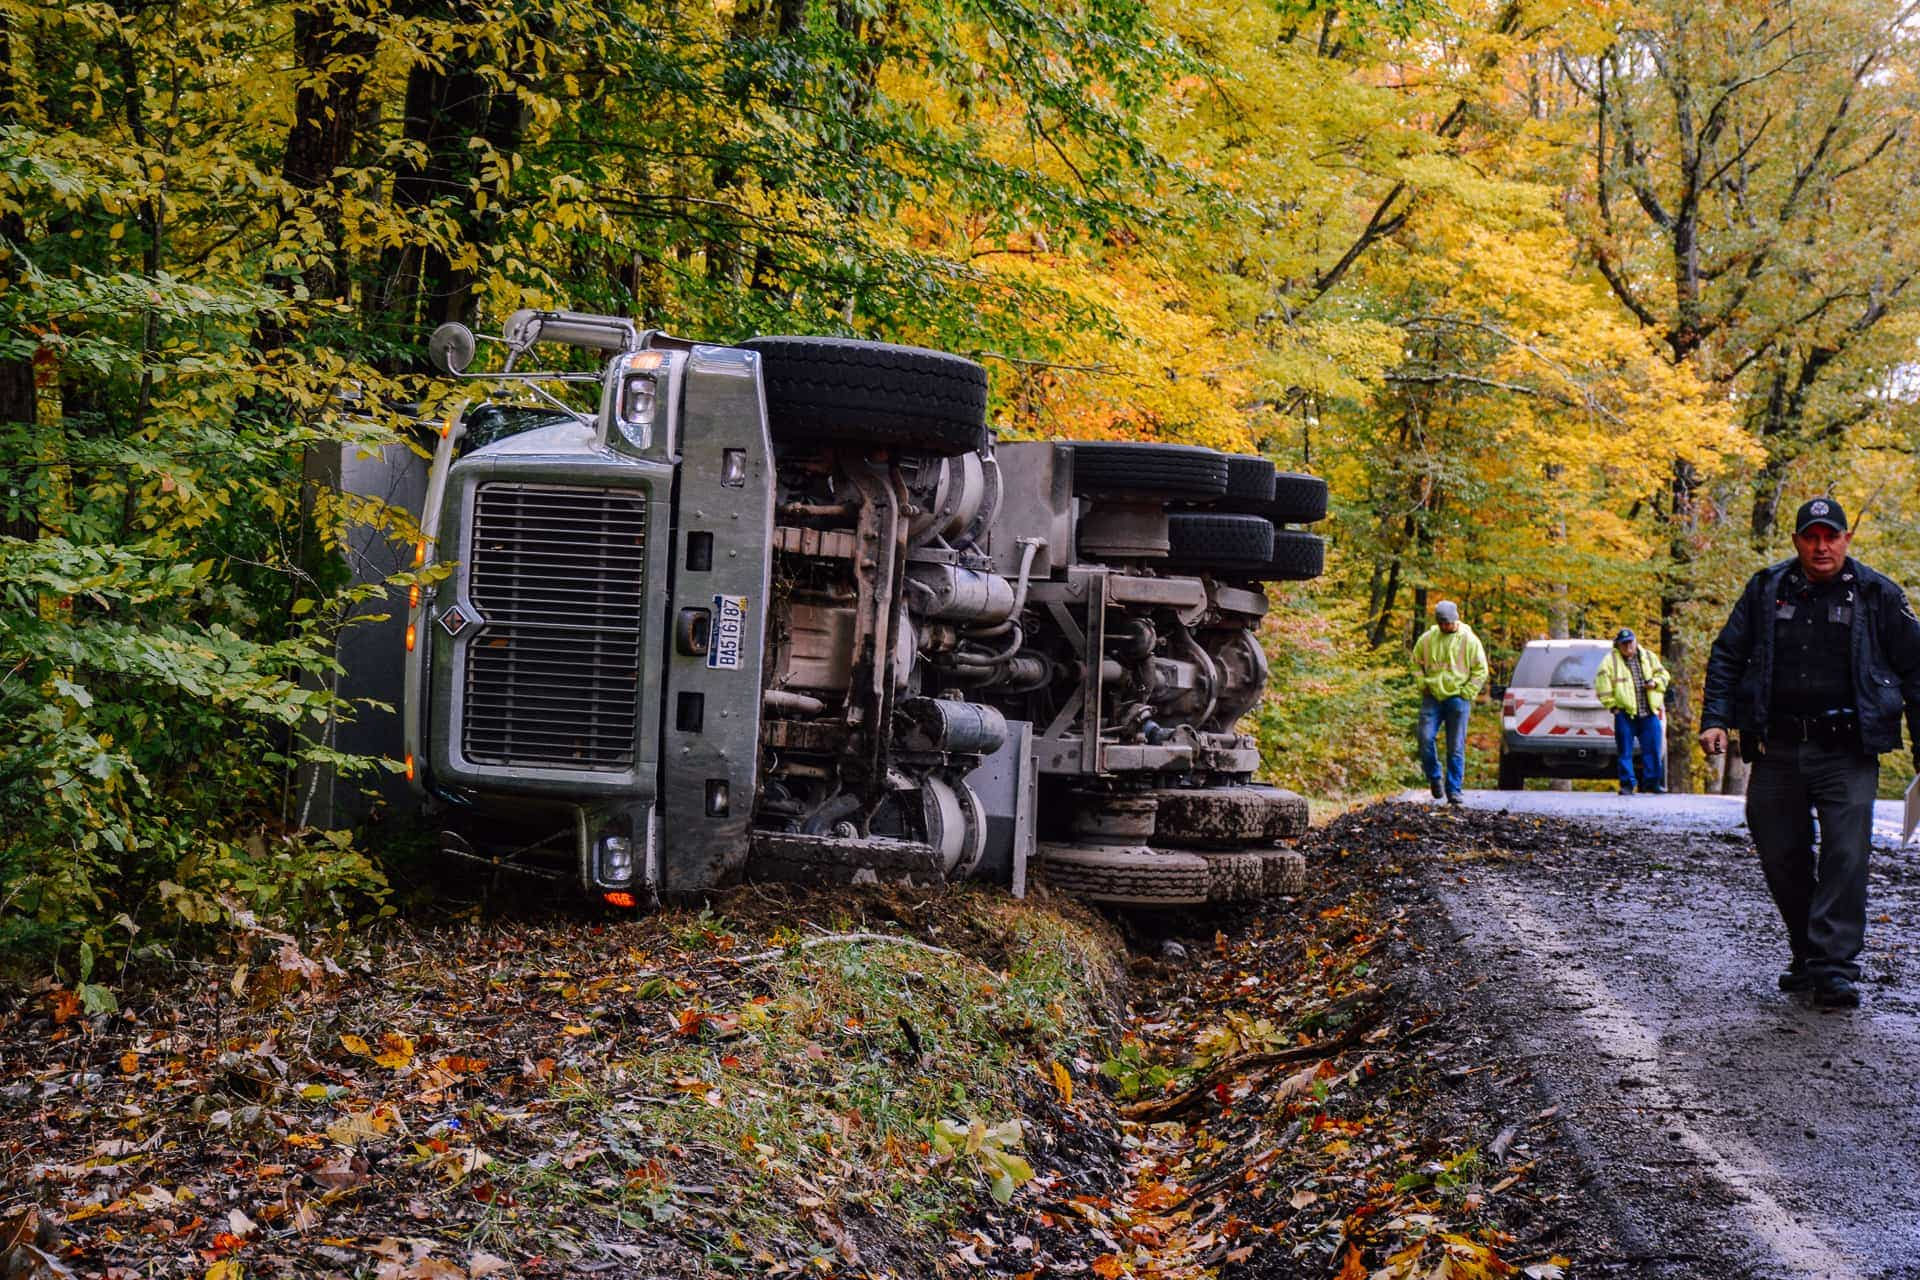 Updated: Asphalt truck rollover caused by rear wheel snag